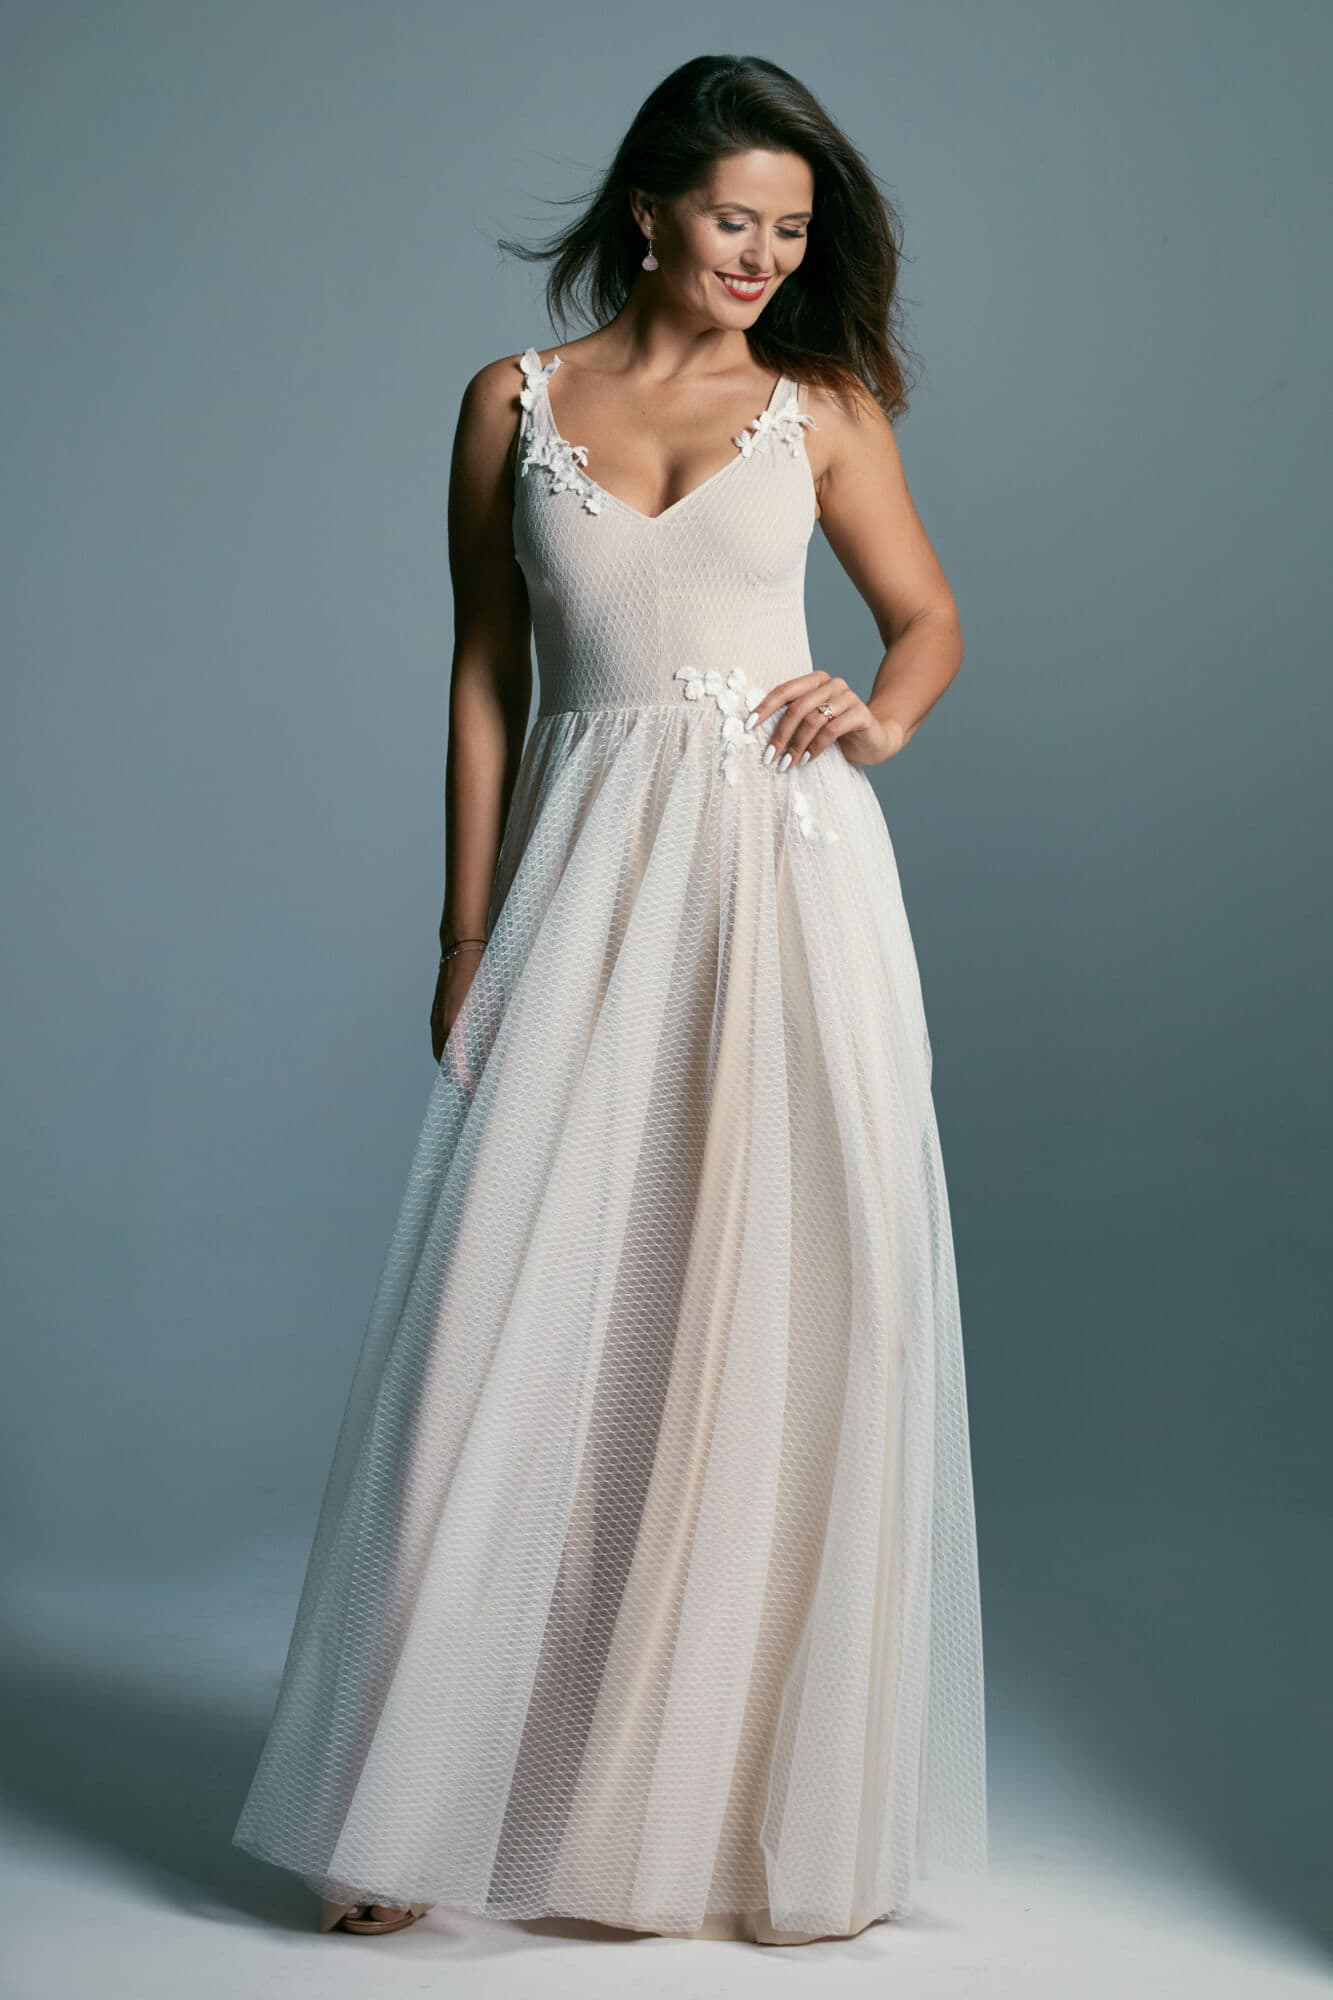 Patterned tulle wedding dress decorated with delicate flowers Barcelona 18